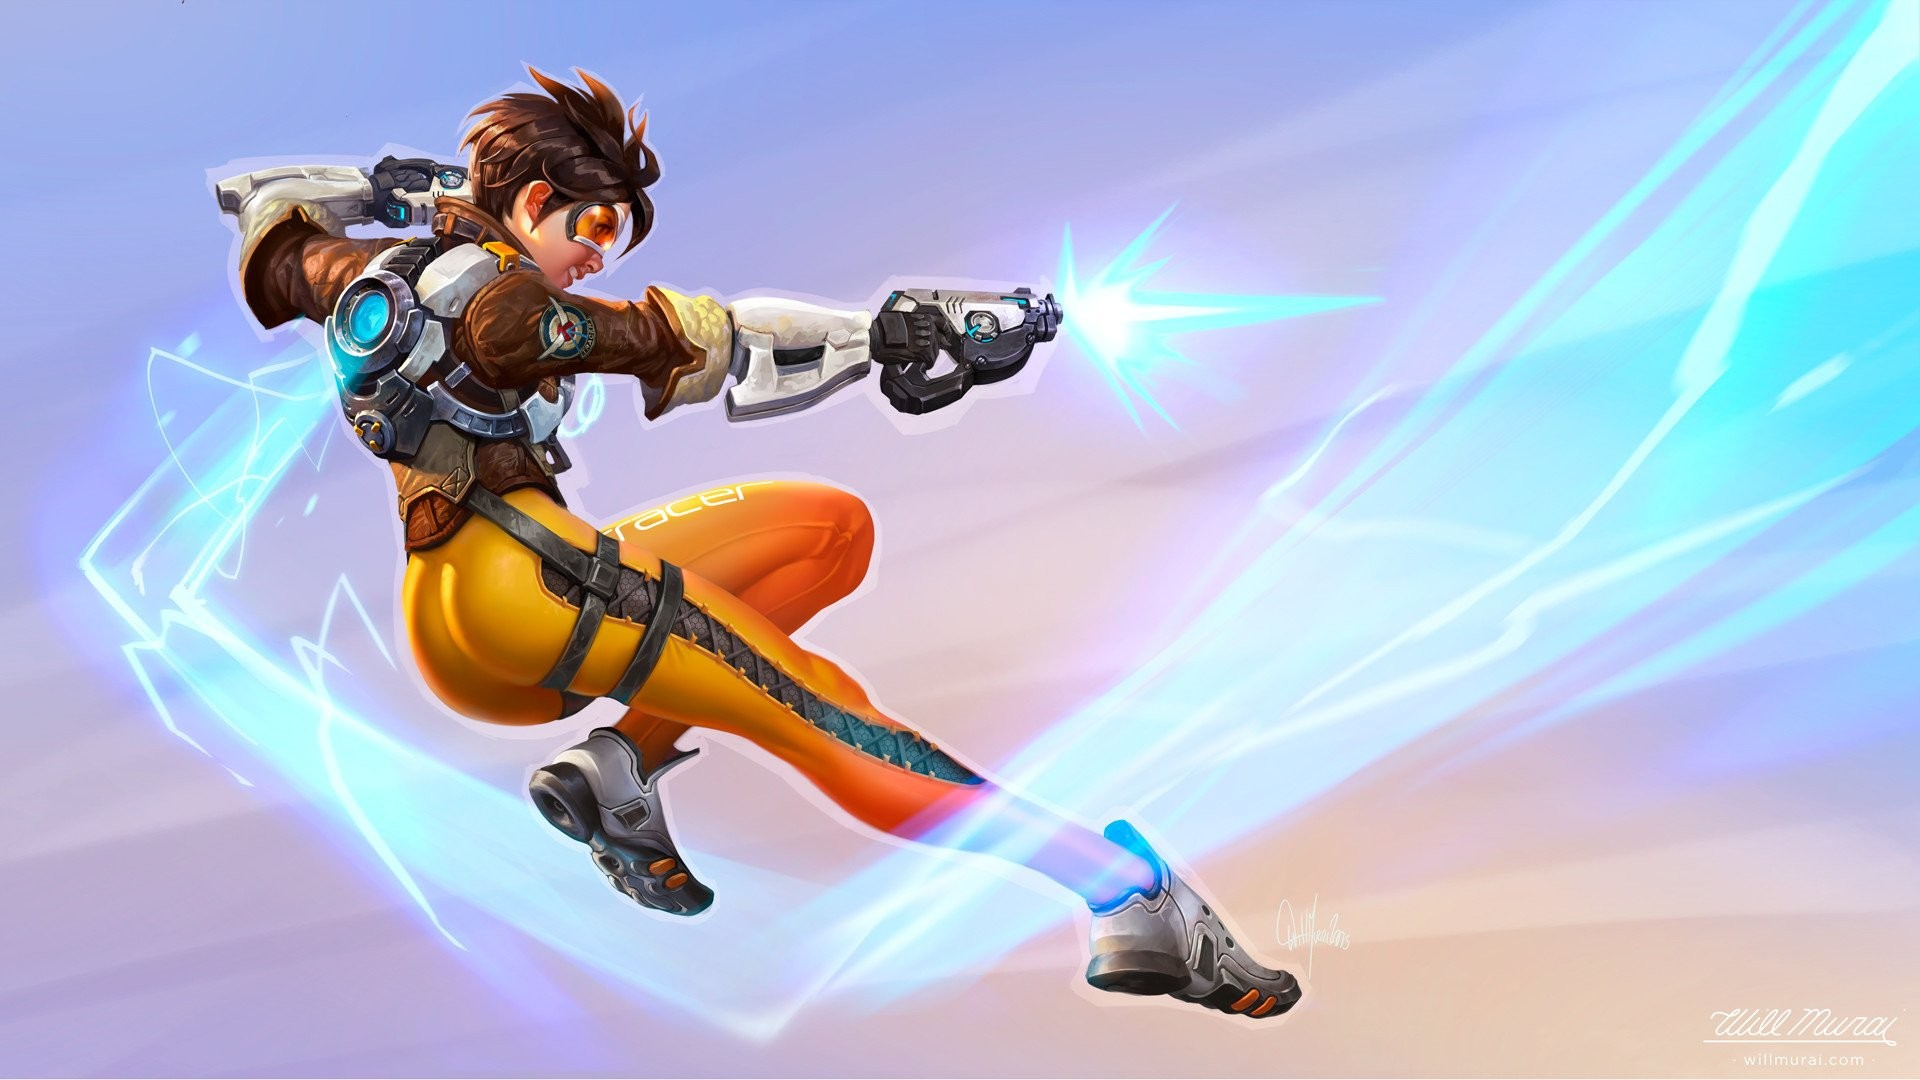 overwatch tracer wallpaper download free hd wallpapers of